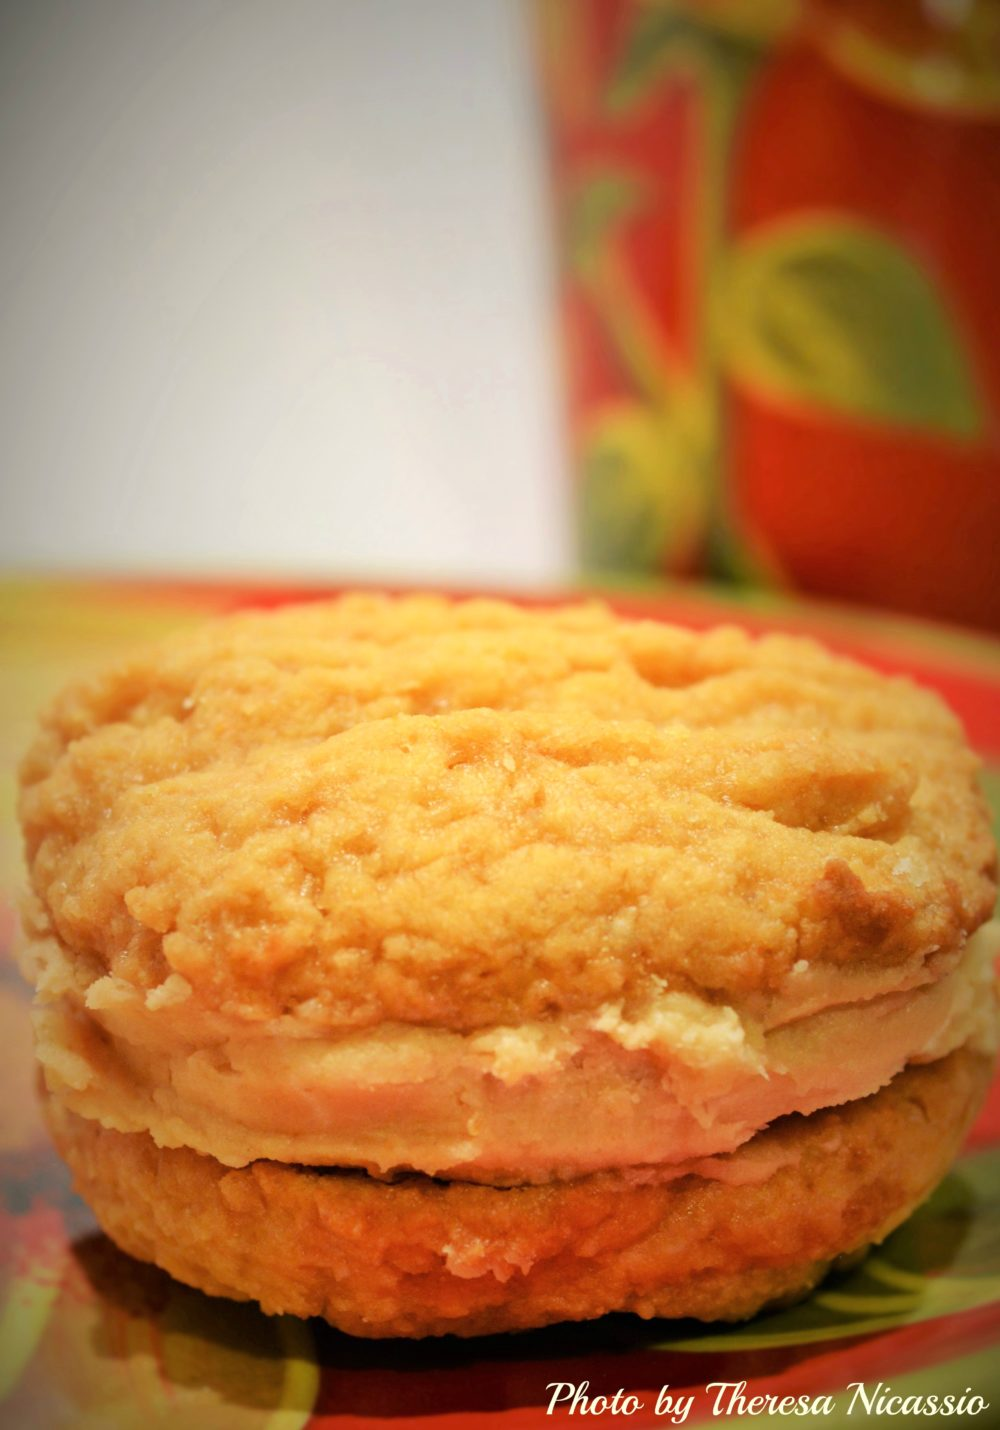 YUM Gluten-Free Peanut Butter Cookie Sandwich